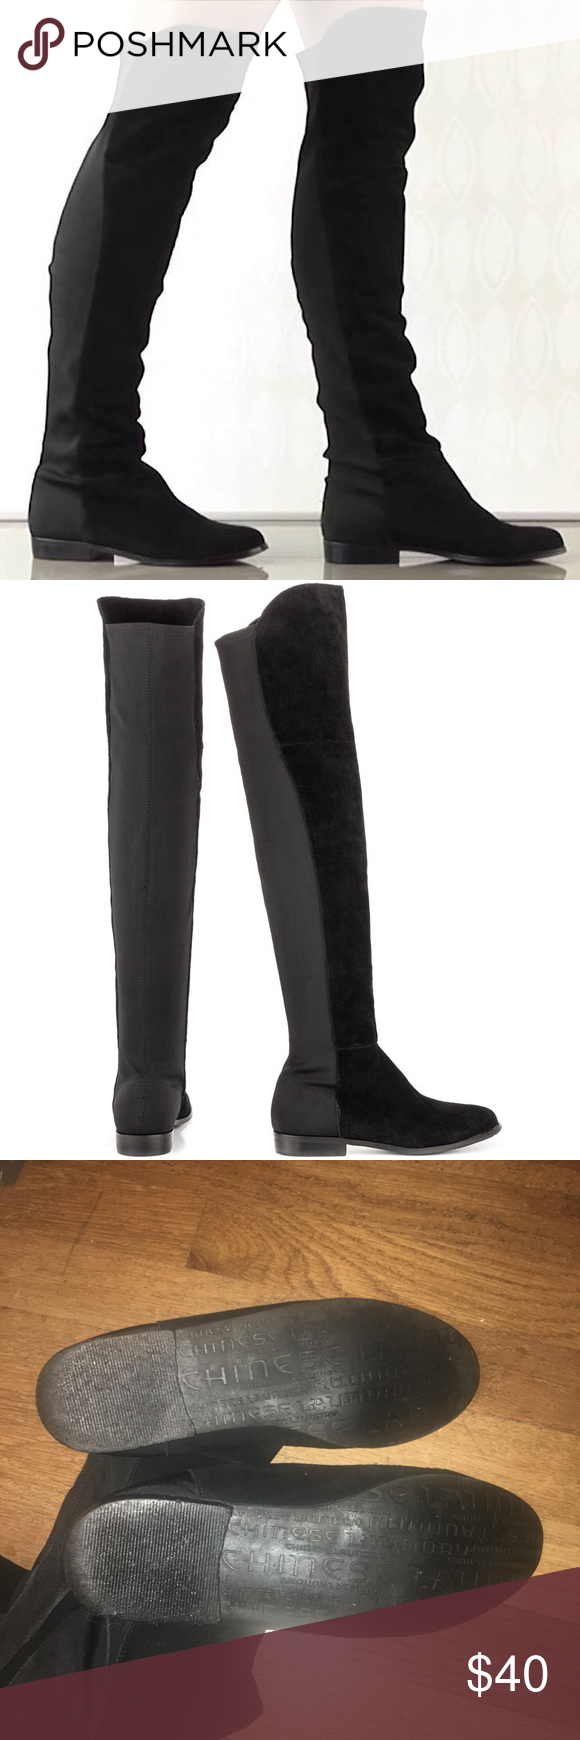 e0d29a6080c9 Chinese Laundry Shoes Over the Knee Boots. Chinese Laundry Riley Boot  Chinese Laundry Riley Boot. Thigh high black split genuine suede boot.  Super cute!